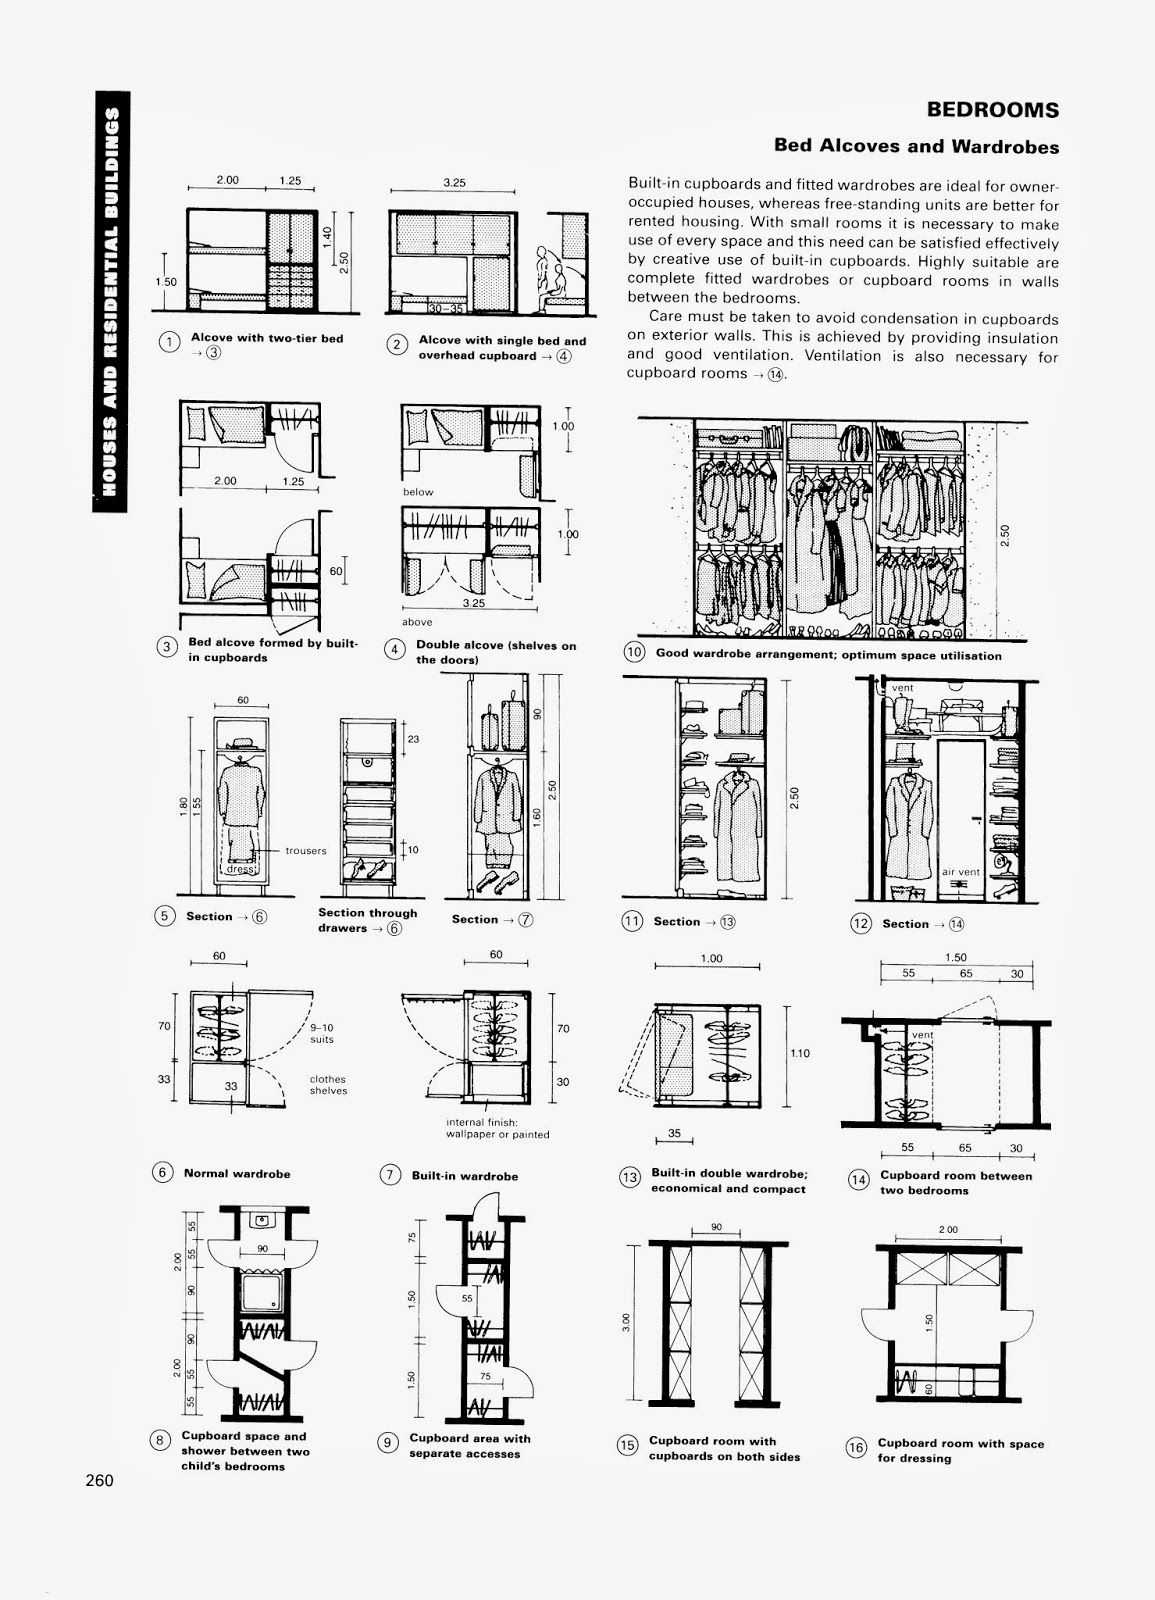 Different Architectural Styles Exterior House Designs: Pin By Aron Ioana On Architecture_interior Design In 2019